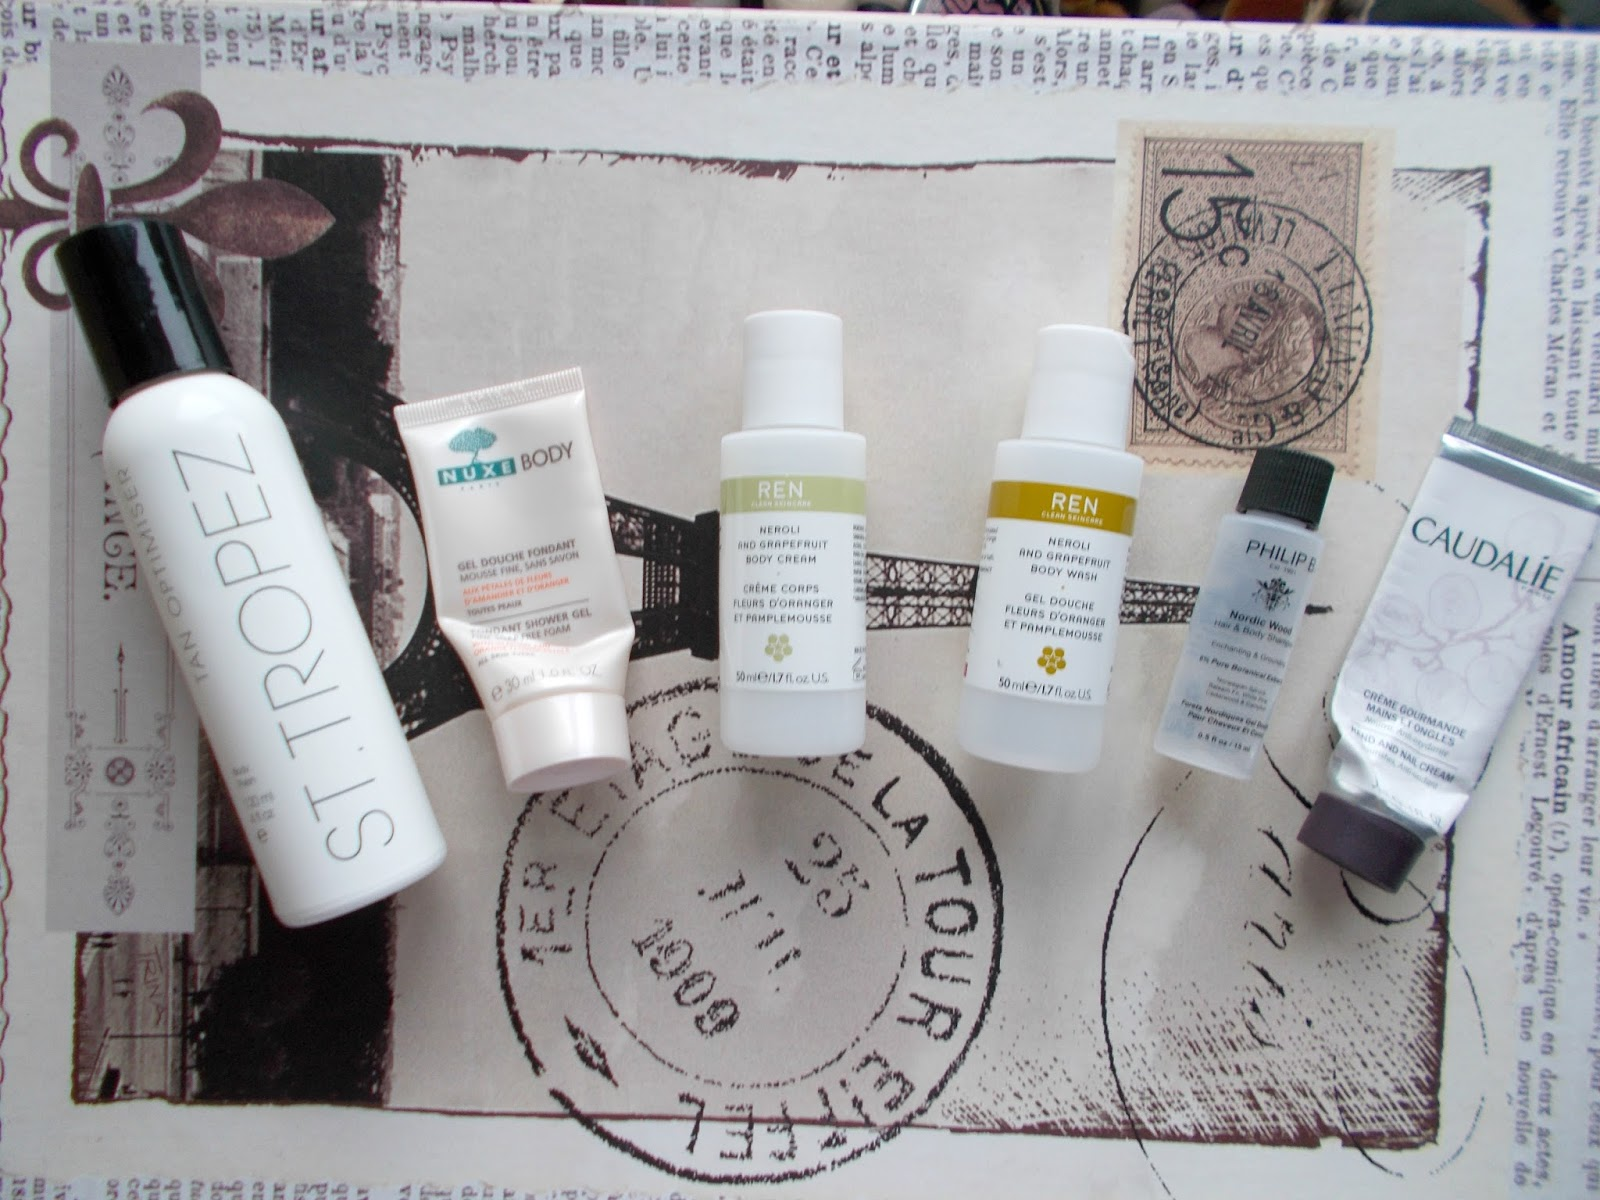 product empties body care review st tropez ren nuxe caudalie philip b review